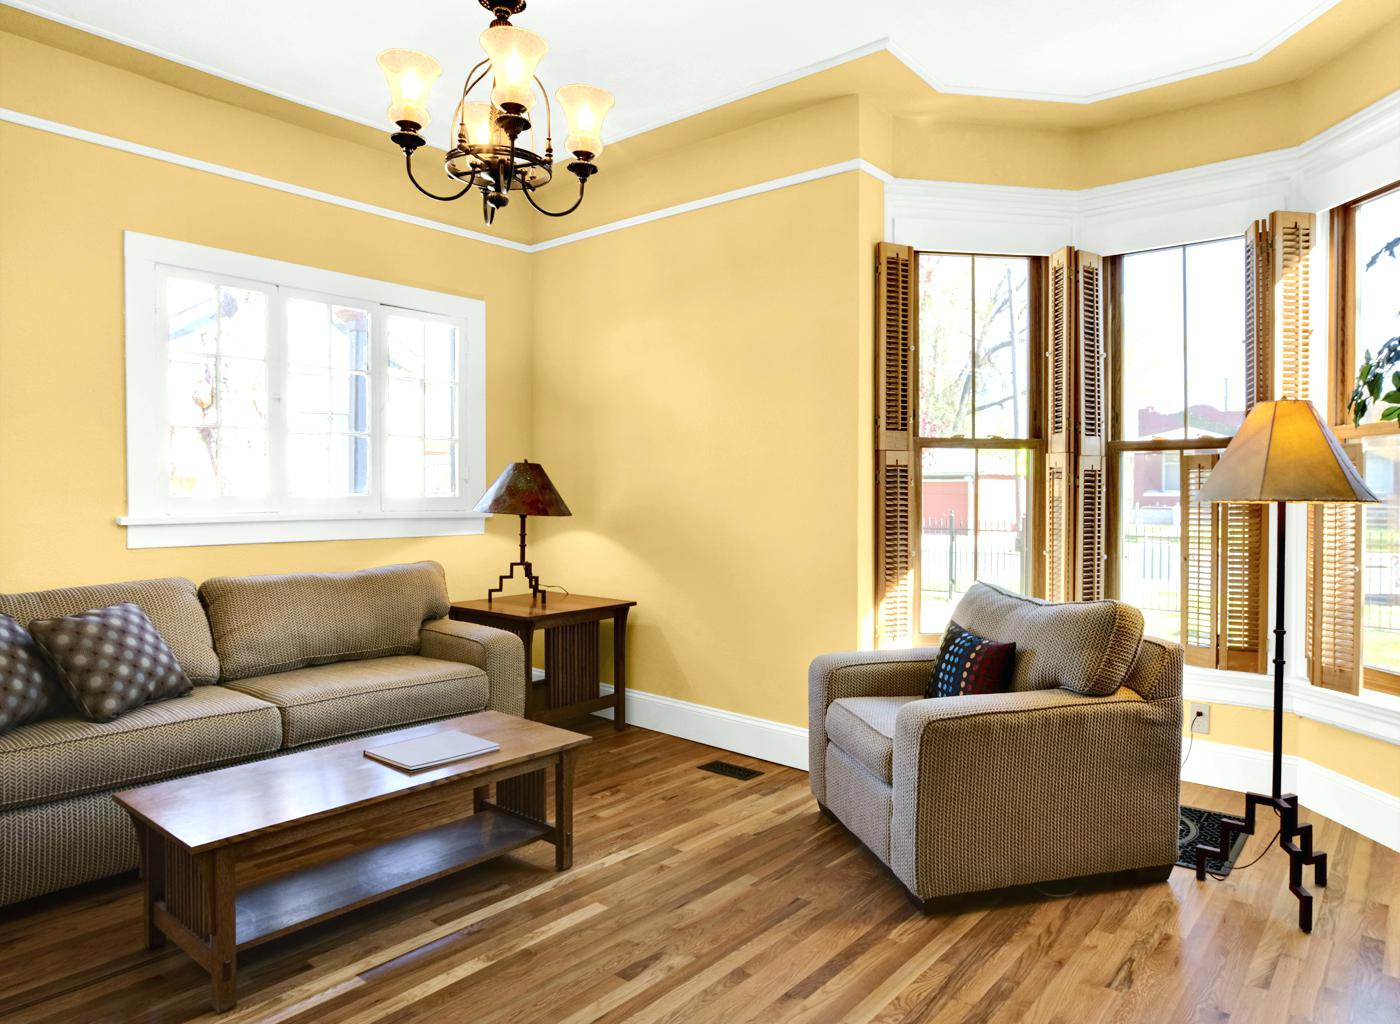 Best Yellow Paint Color Living Room Thecreativescientistcom The Best Colors For A Living Room L 10731 Tdf Blog